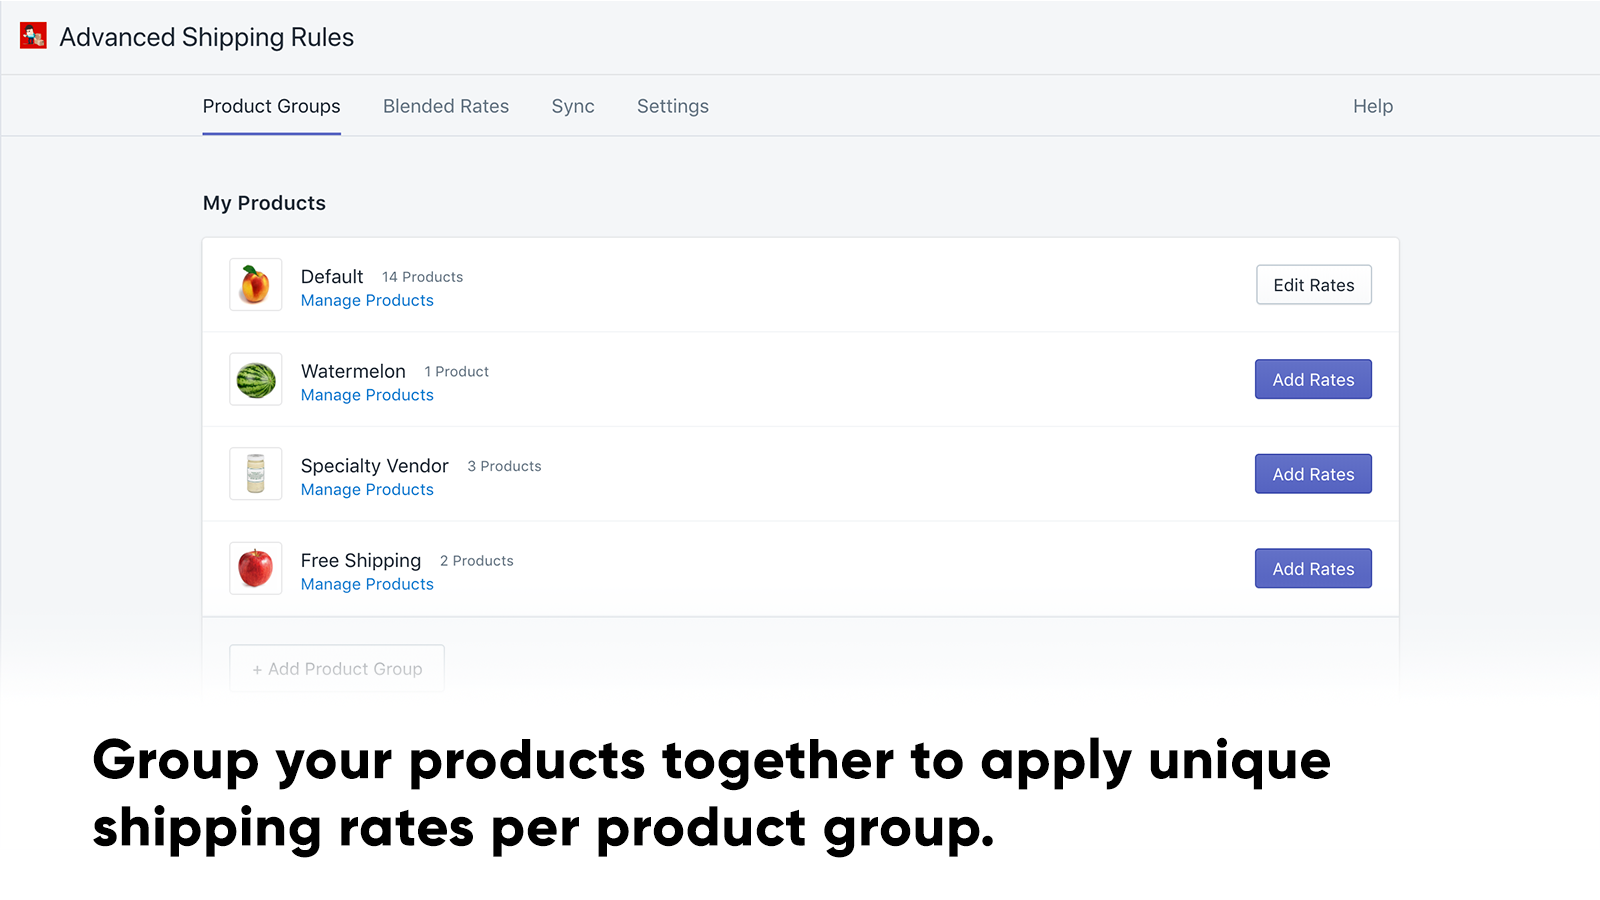 Group your products together to apply unique shipping rates